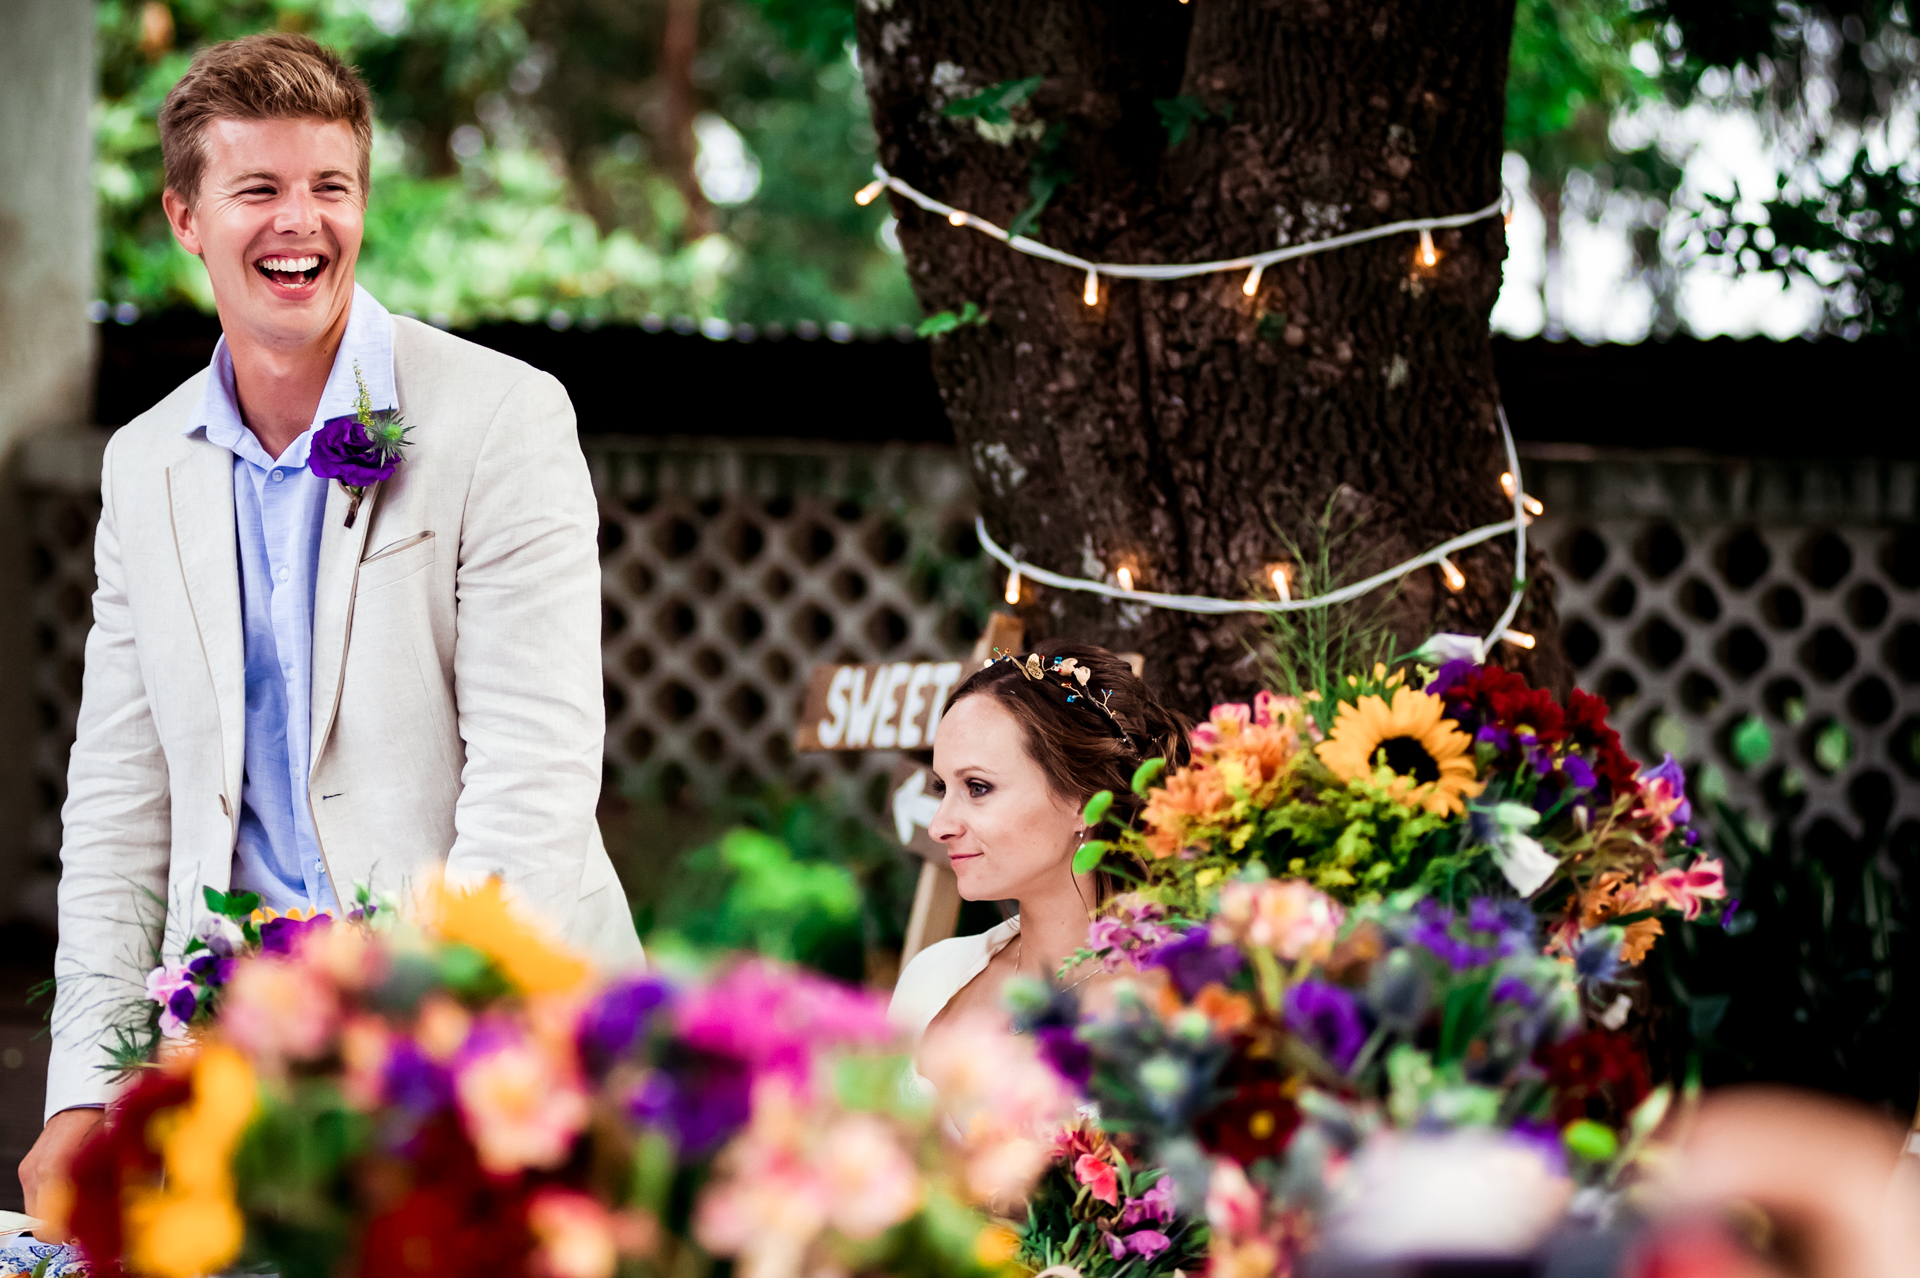 Western Cape, SA Elopement Venue Image | The groom laughs at a comical moment